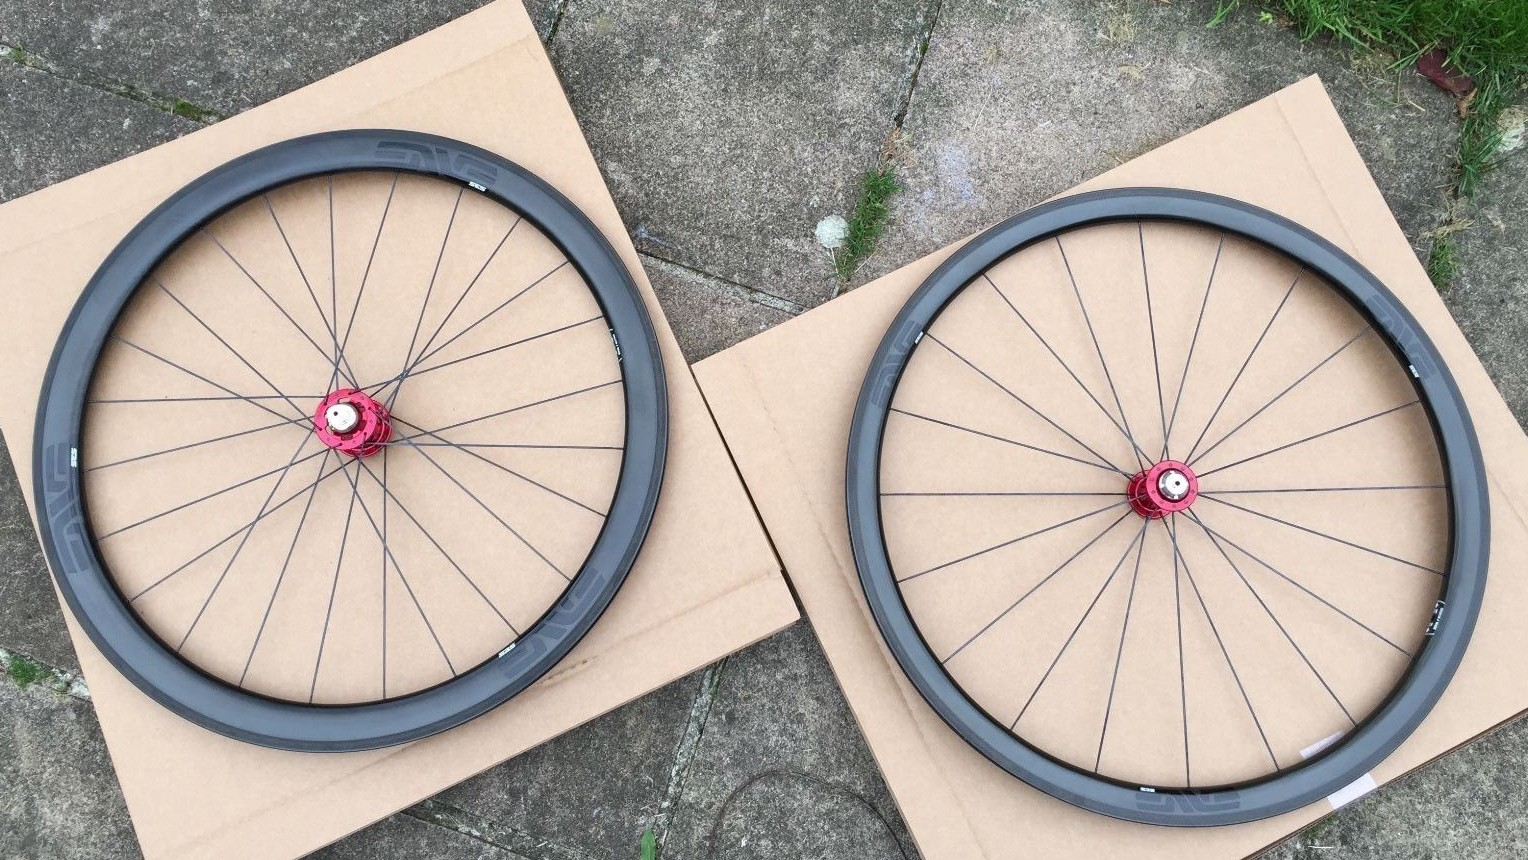 These wheels present a £900-ish saving on RRP